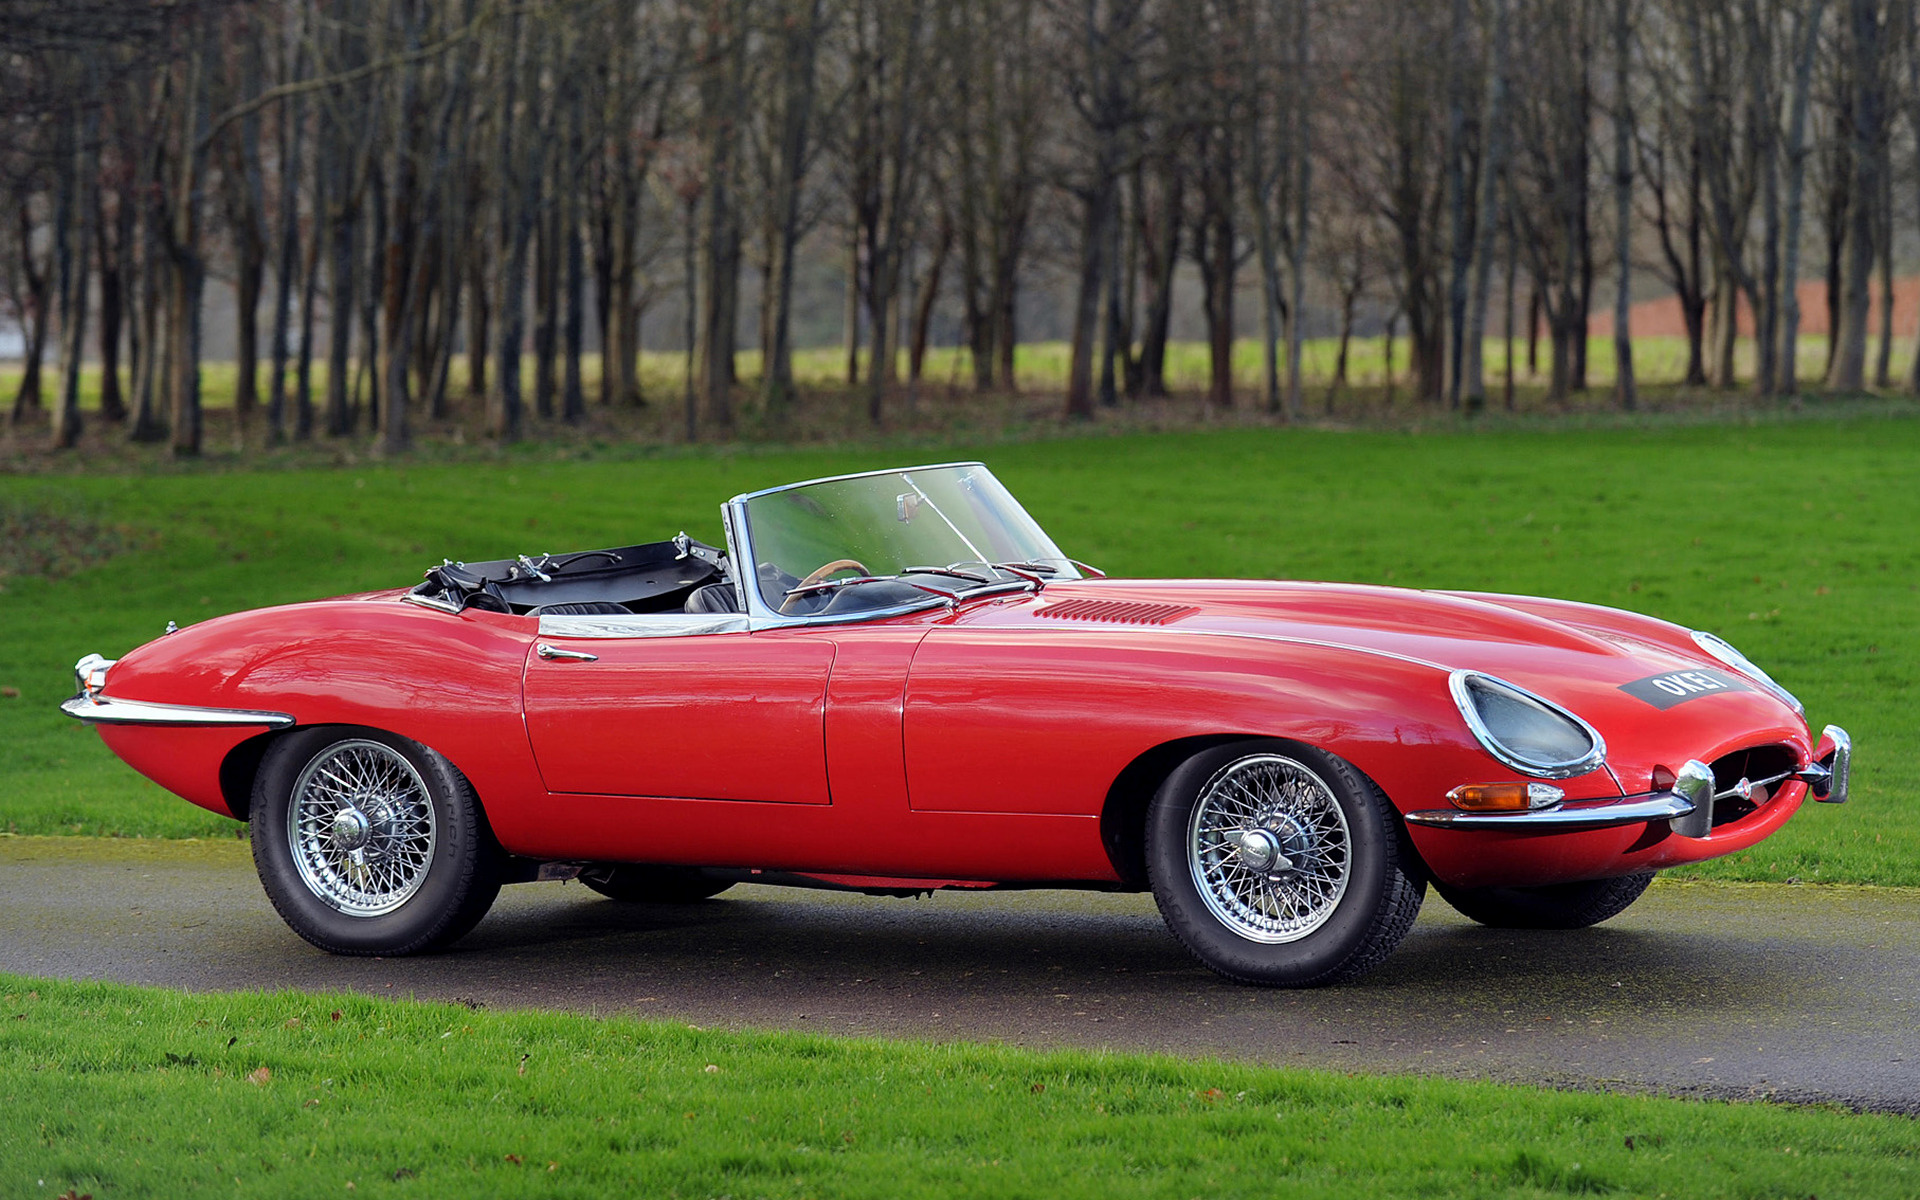 Jaguar F Type Coupe >> 1961 Jaguar E-Type Open Two-seater (UK) - Wallpapers and ...